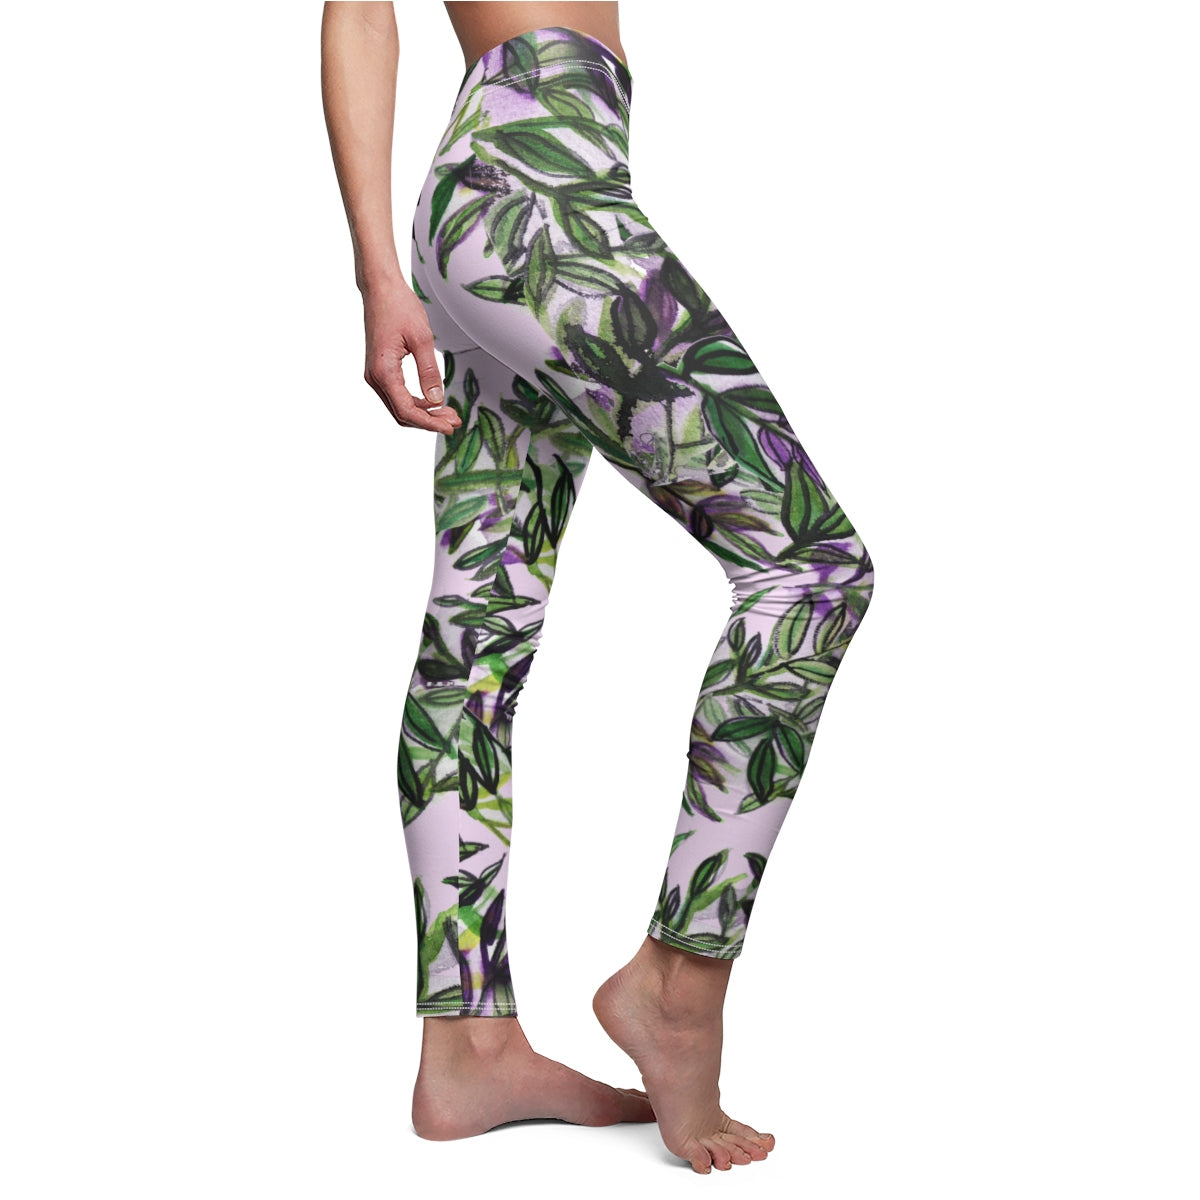 Green Tropical Leaves Print Women's Casual Leggings, Fancy Dressy Pants, Made in USA-Casual Leggings-White Seams-M-Heidi Kimura Art LLC